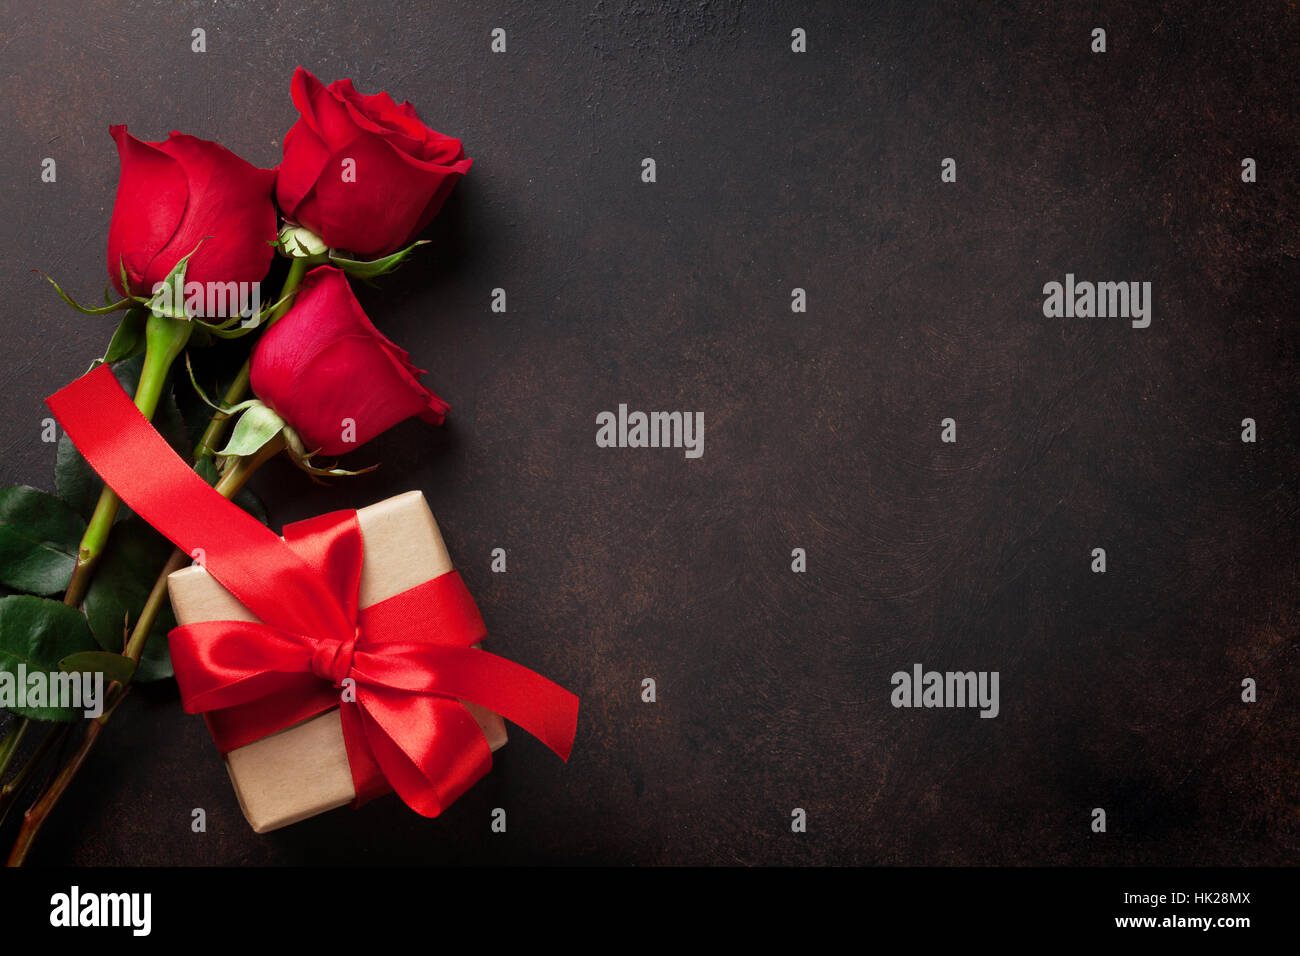 Valentines day greeting card red roses and gift box on stone table valentines day greeting card red roses and gift box on stone table top view with space for your greetings kristyandbryce Choice Image